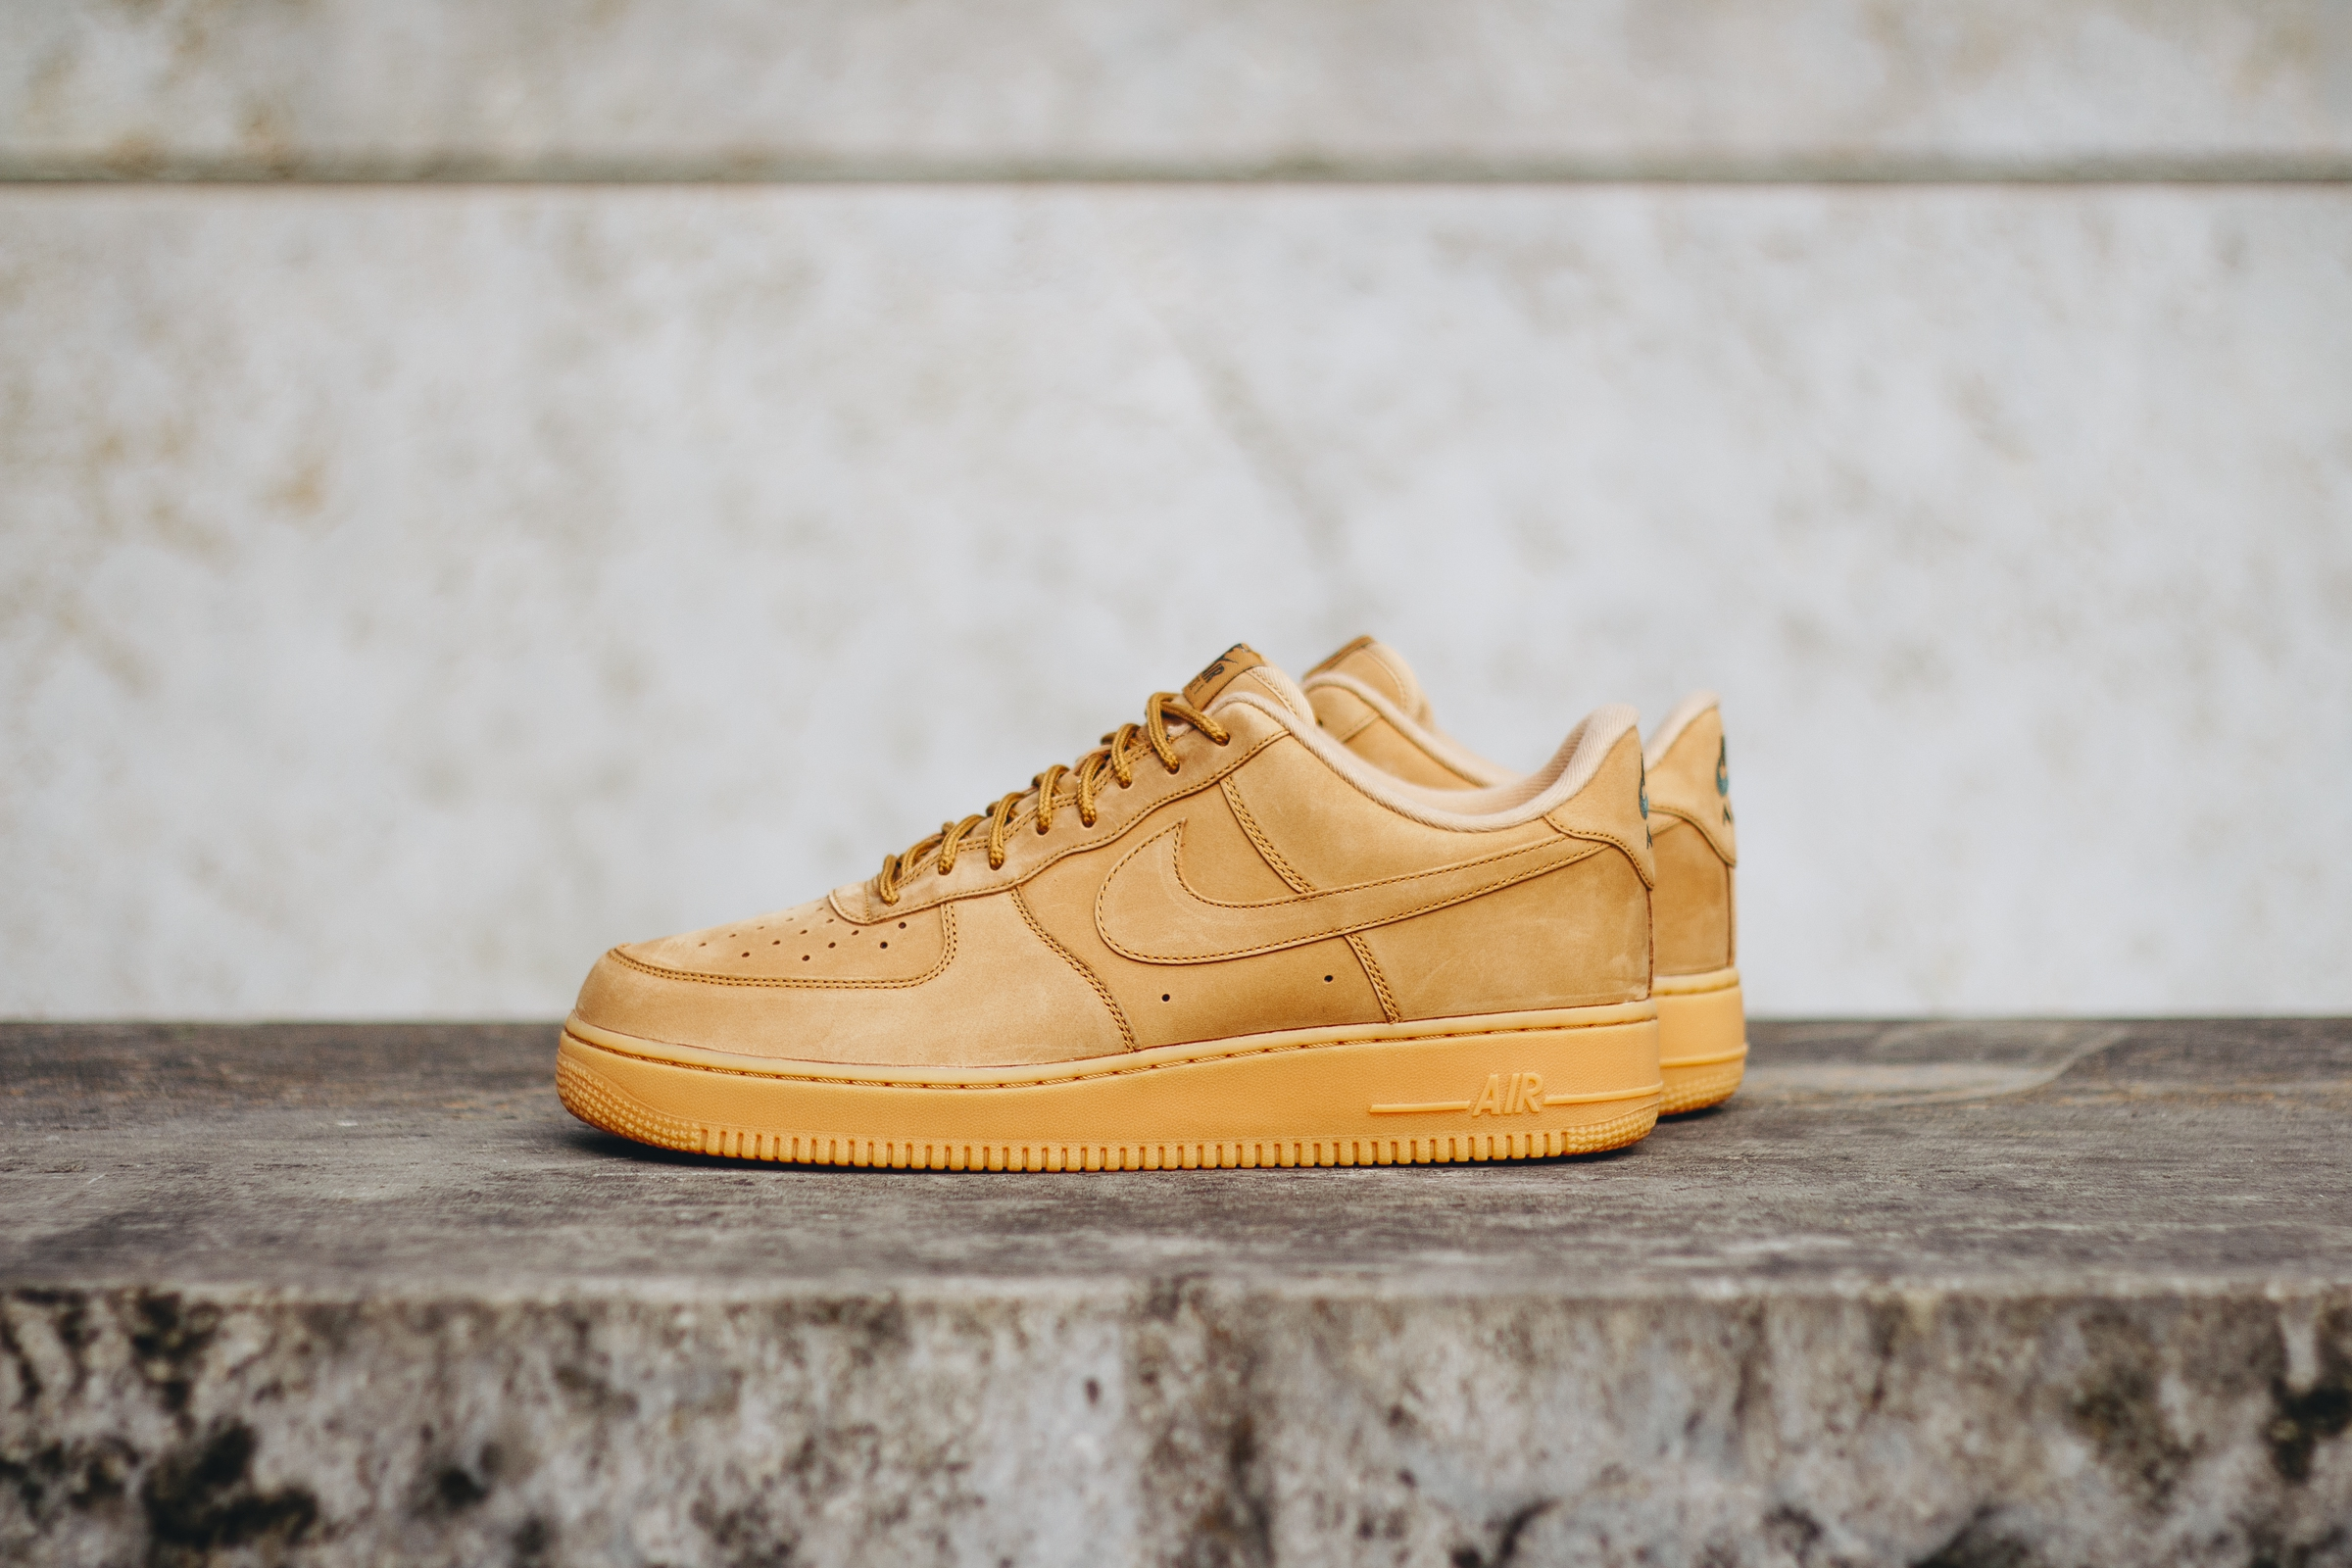 Nike Air Force 1 '07 WB - Flax / Flax